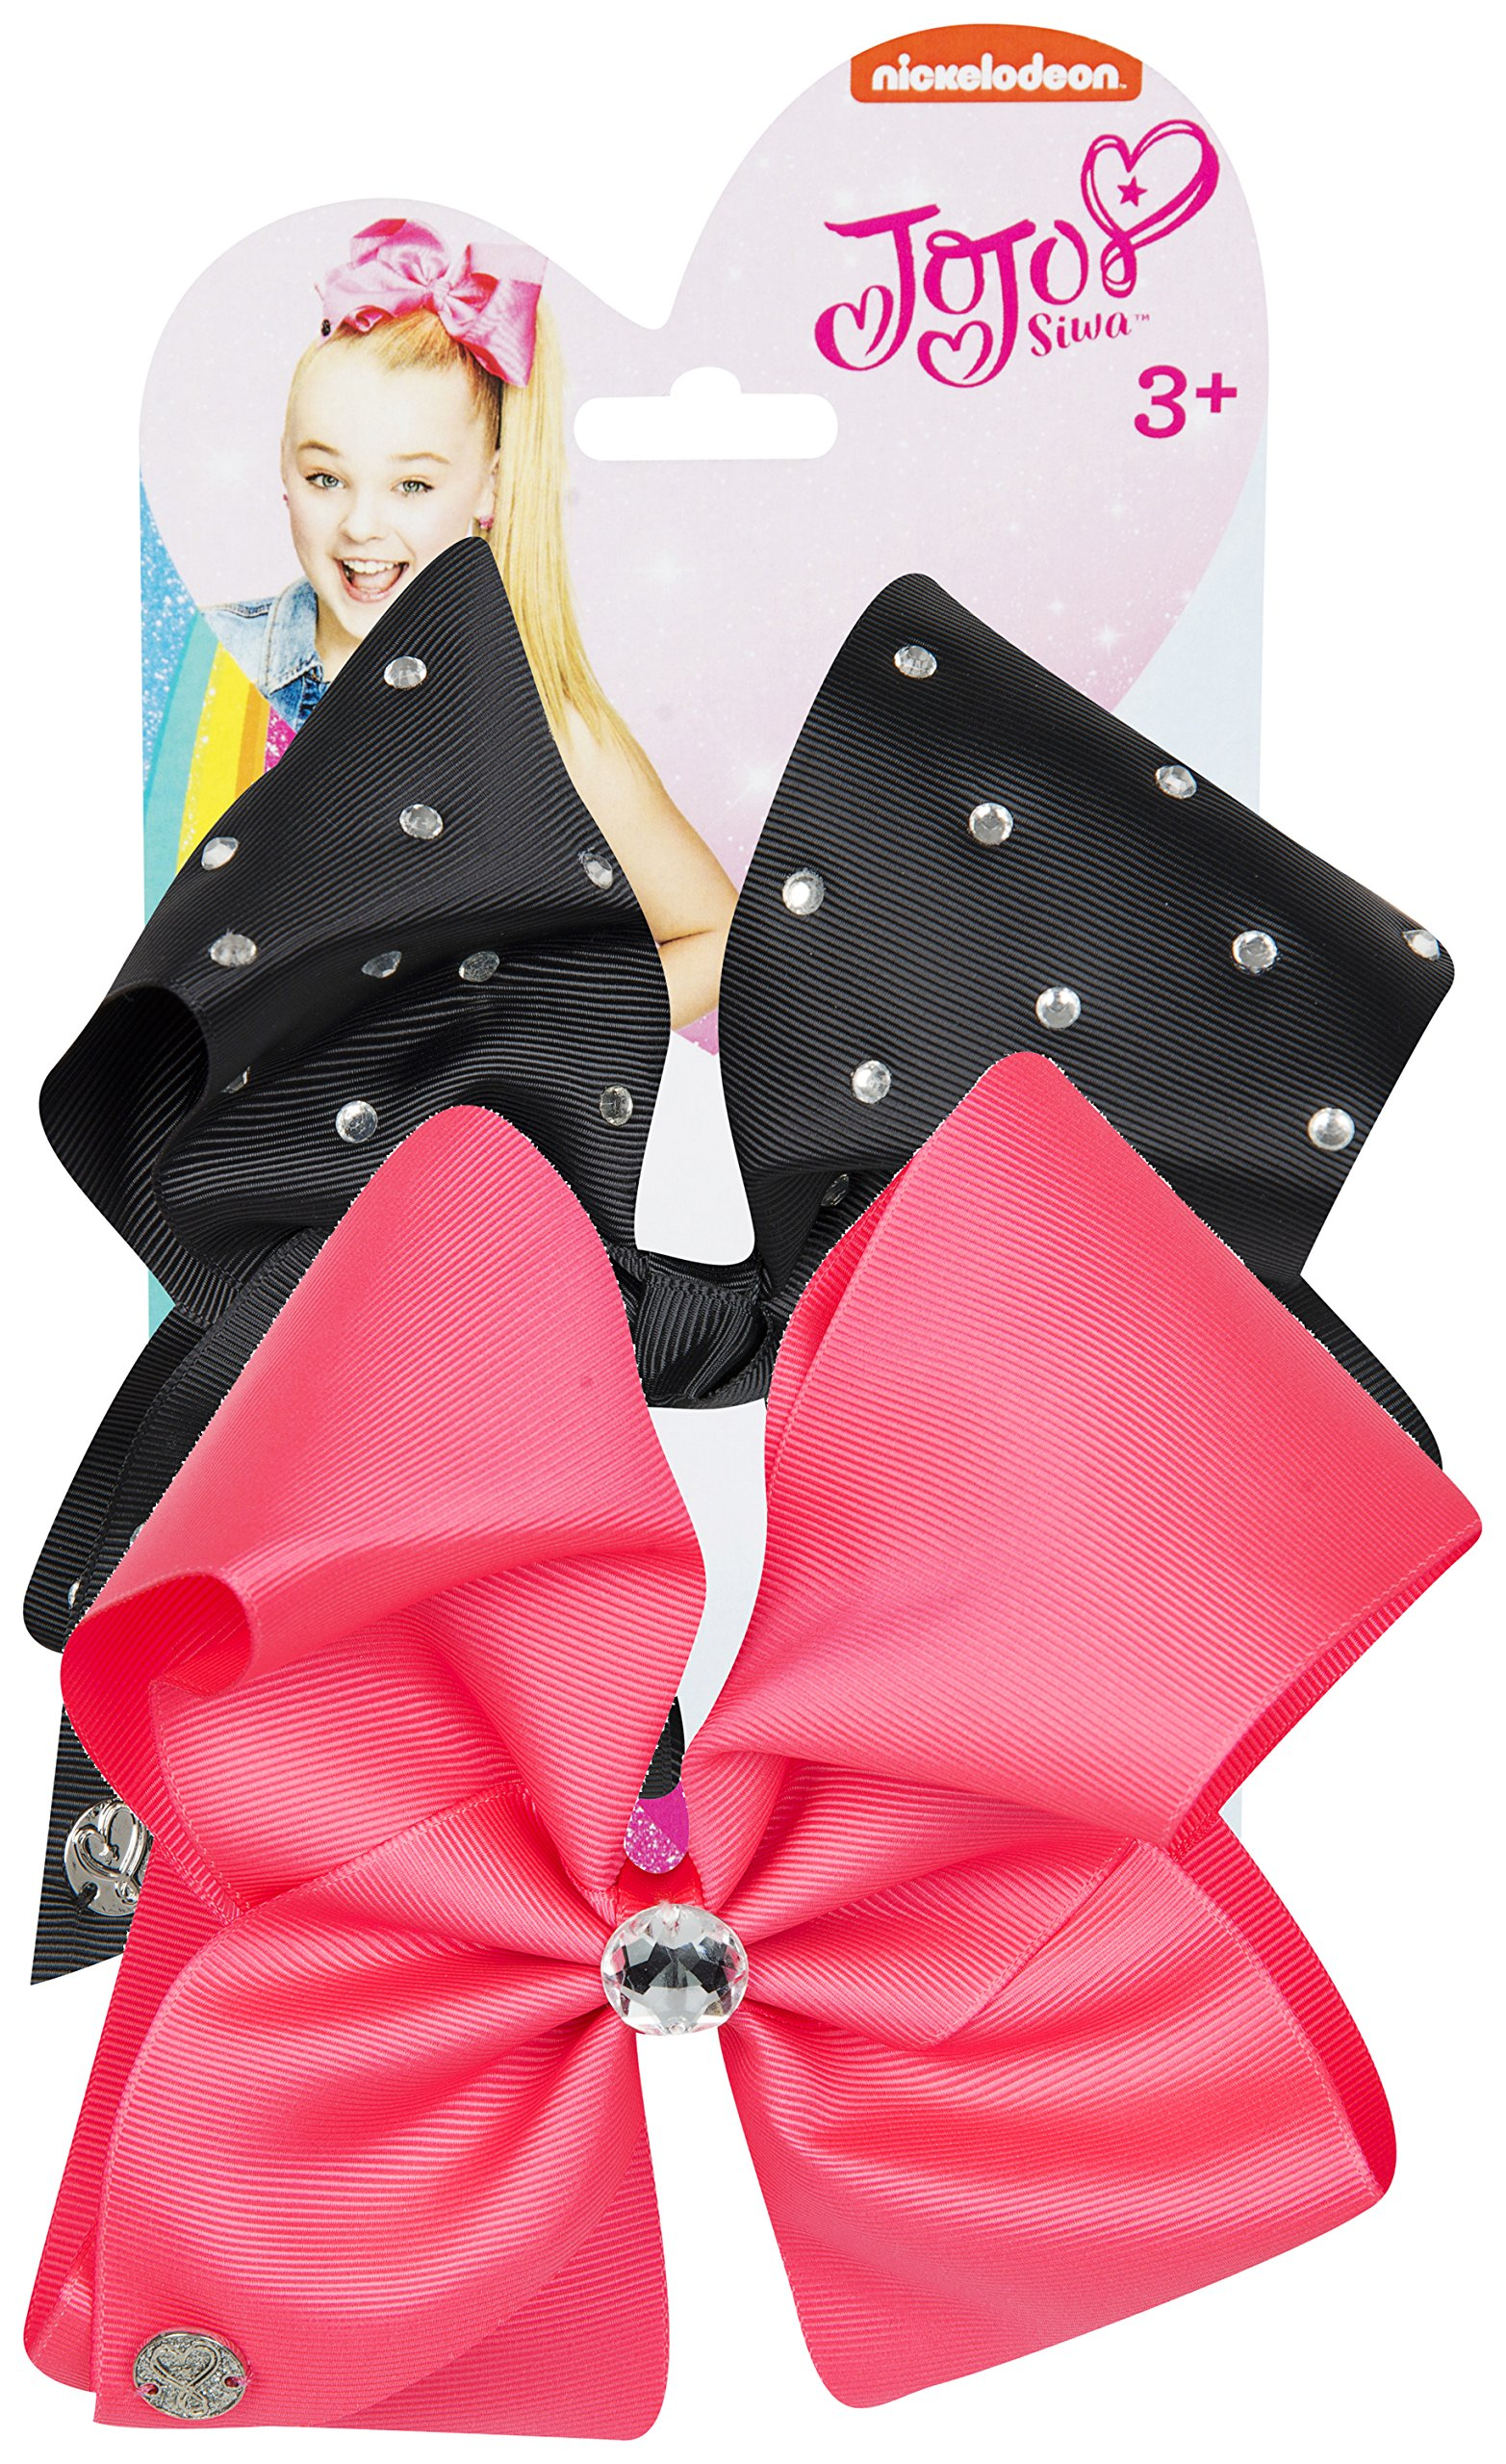 JoJo Bows Signature Collection 2 x Large Hair Bows - Limited Edition - Best Present for Your Little Girl – Pink & Black